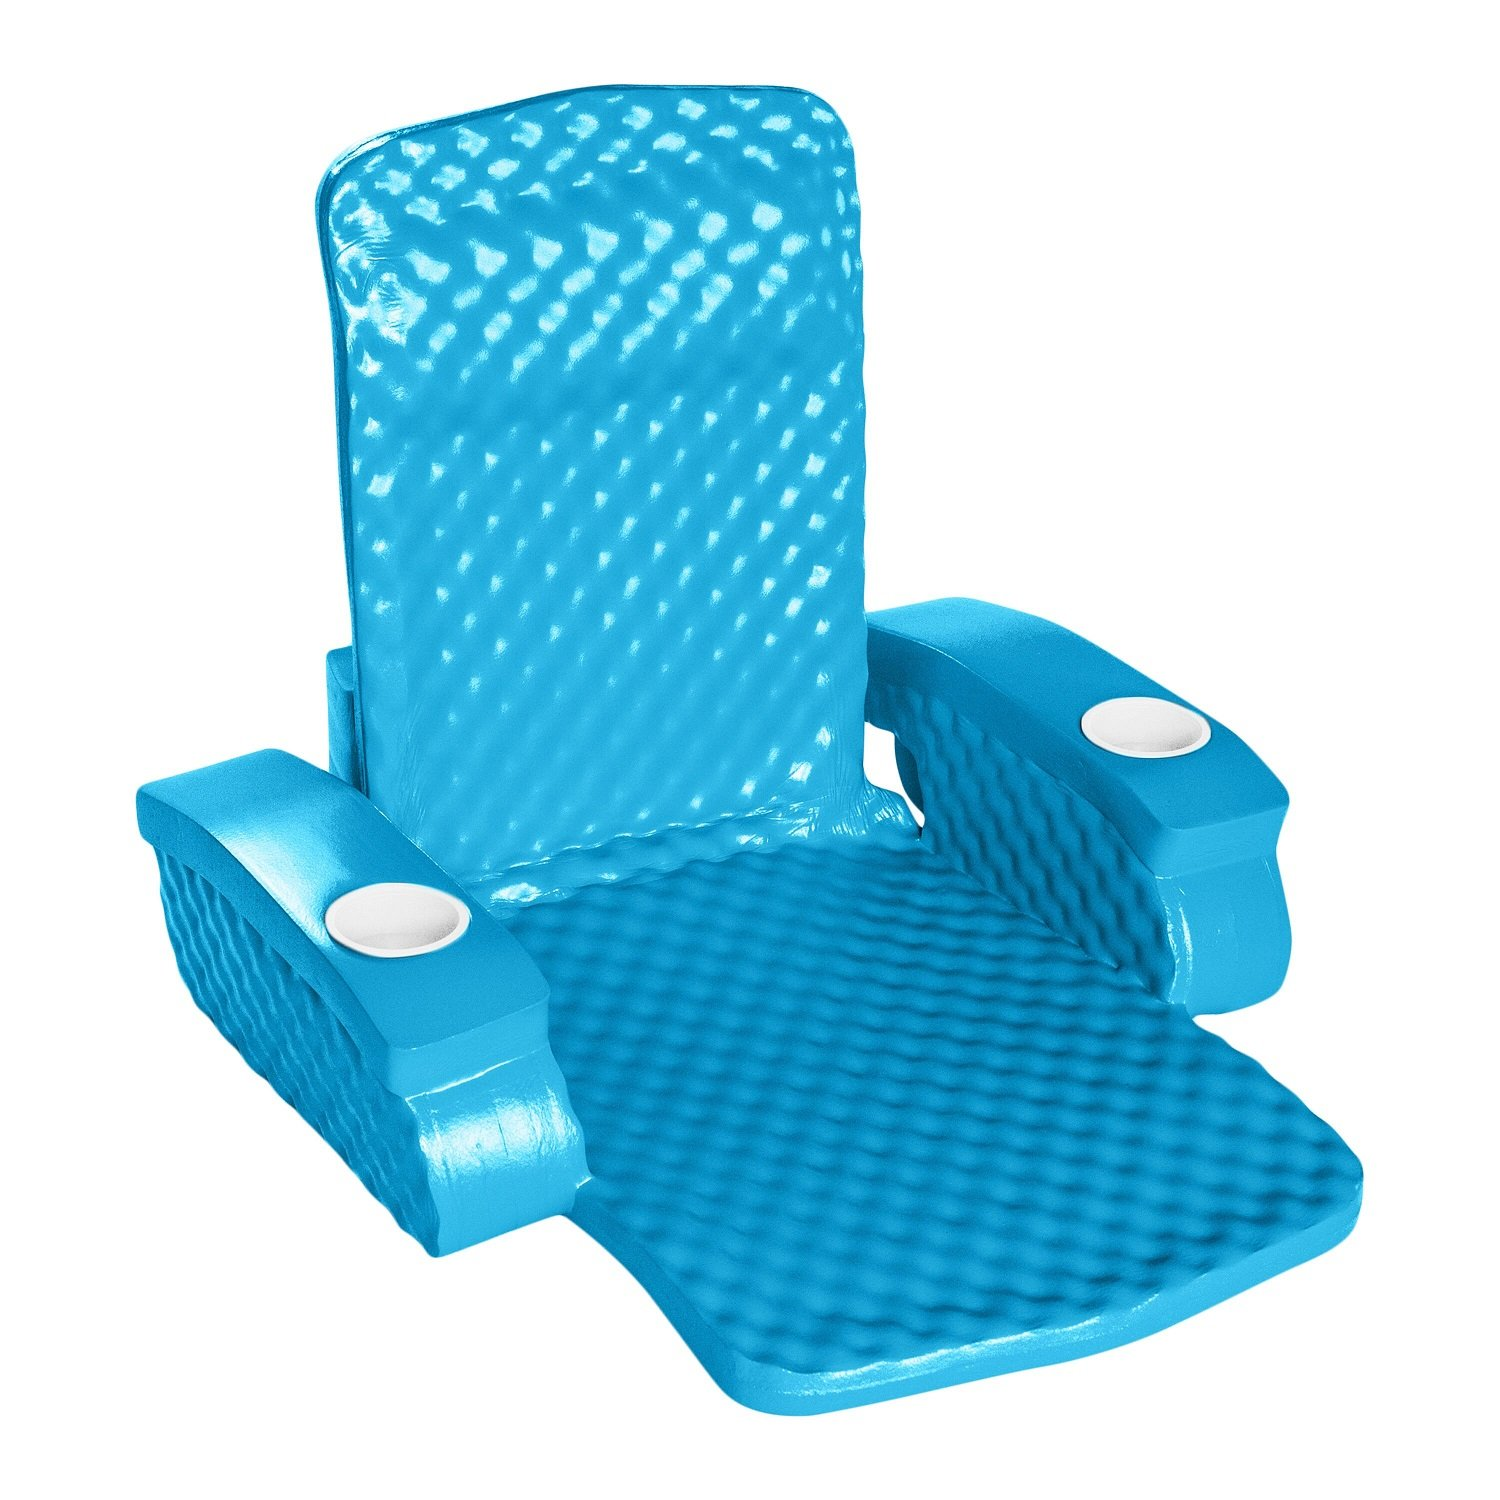 TRC Recreation Super -Soft Baja Folding Chair, Marina Blue by TRC Recreation (Image #1)